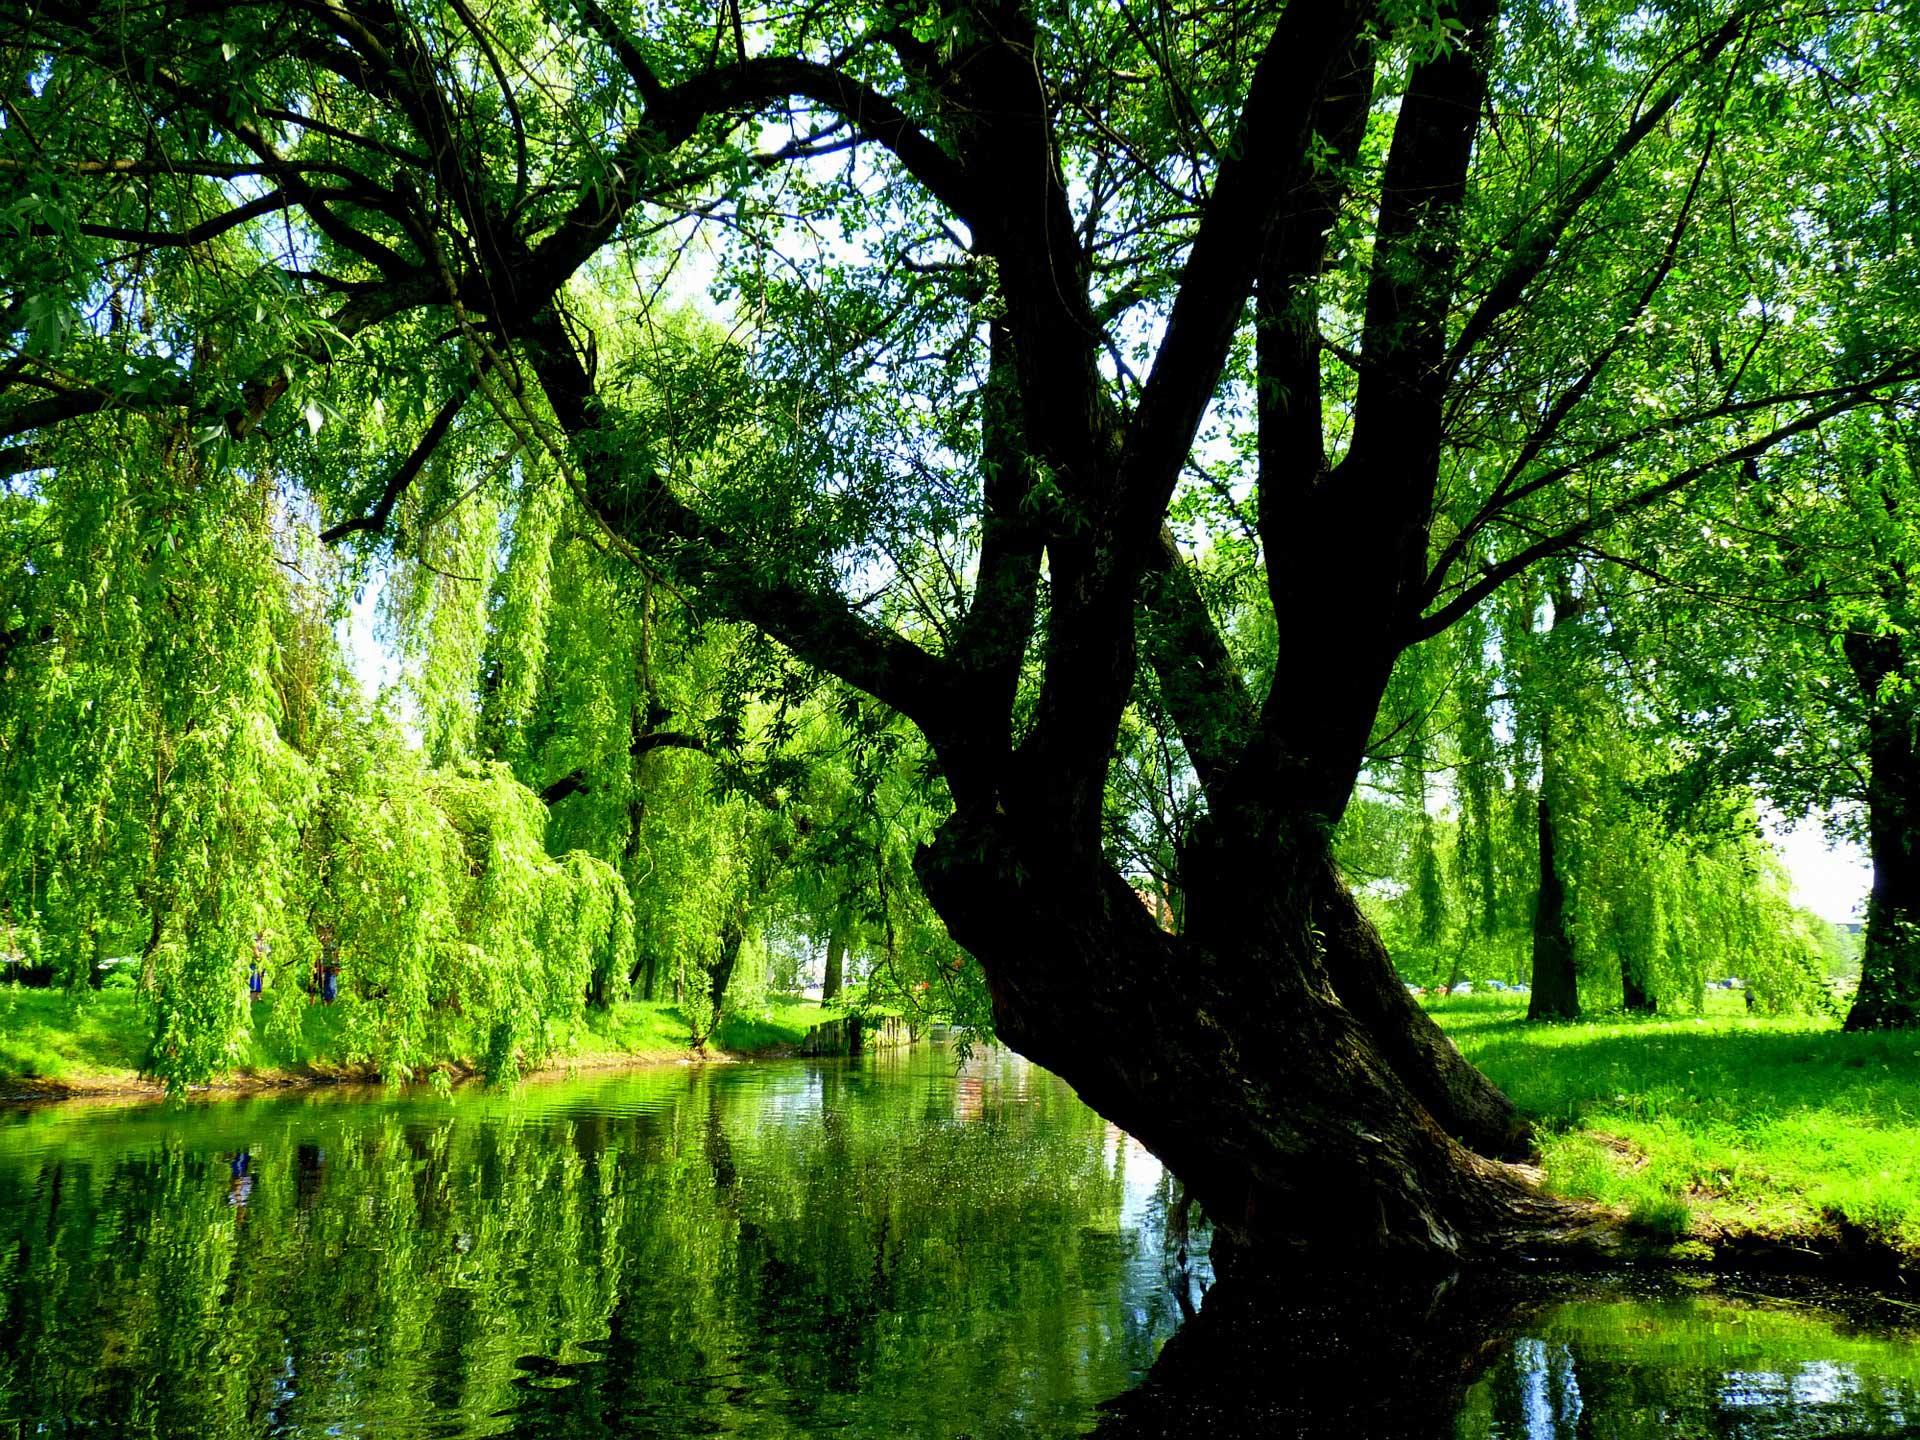 willow tree trees water nature witching bark found species learn plants poland common